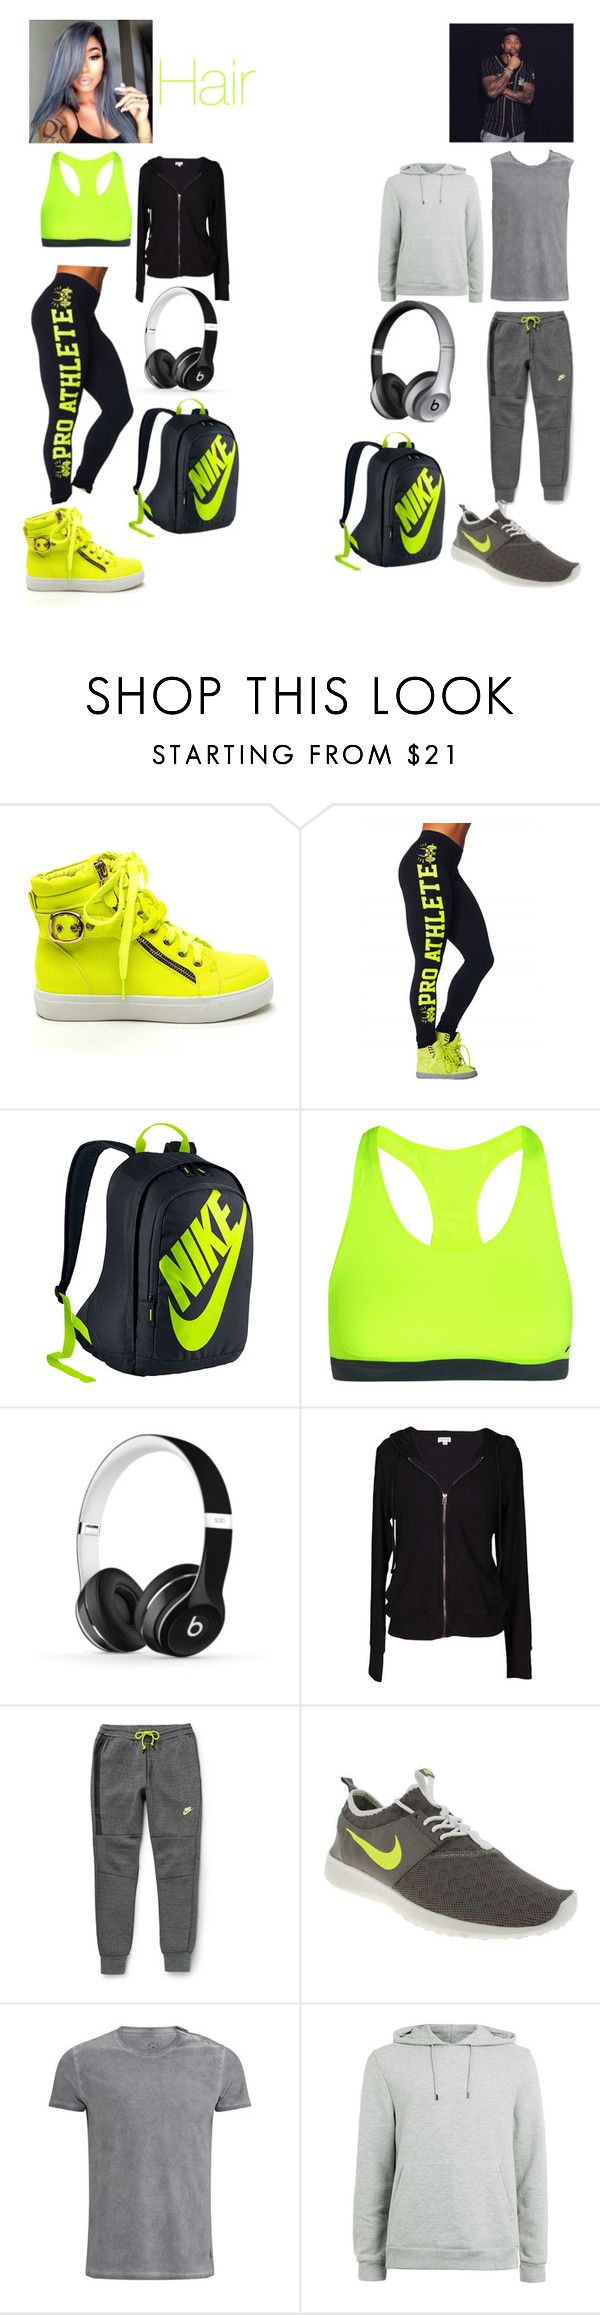 """""""Odell Beckam #3"""" by baeslife ❤ liked on Polyvore featuring NIKE, Beats by Dr. Dre, Velvet by Graham & Spencer, Belstaff, Topman and Supra"""